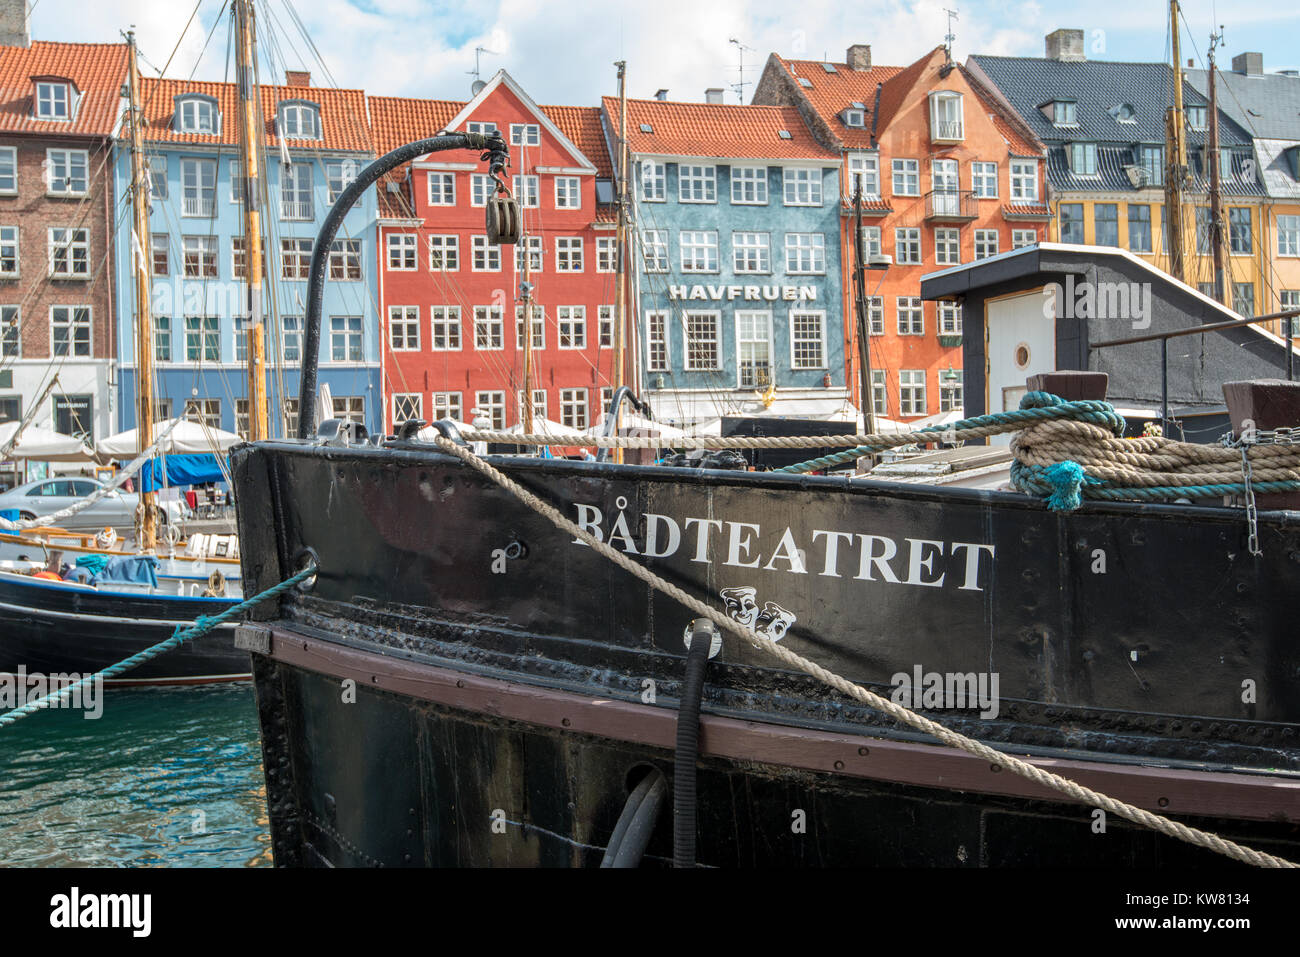 Boat theater at Nyhavn, a 17th century harbor district in Copenhagen and a popular waterfront tourist attraction Stock Photo